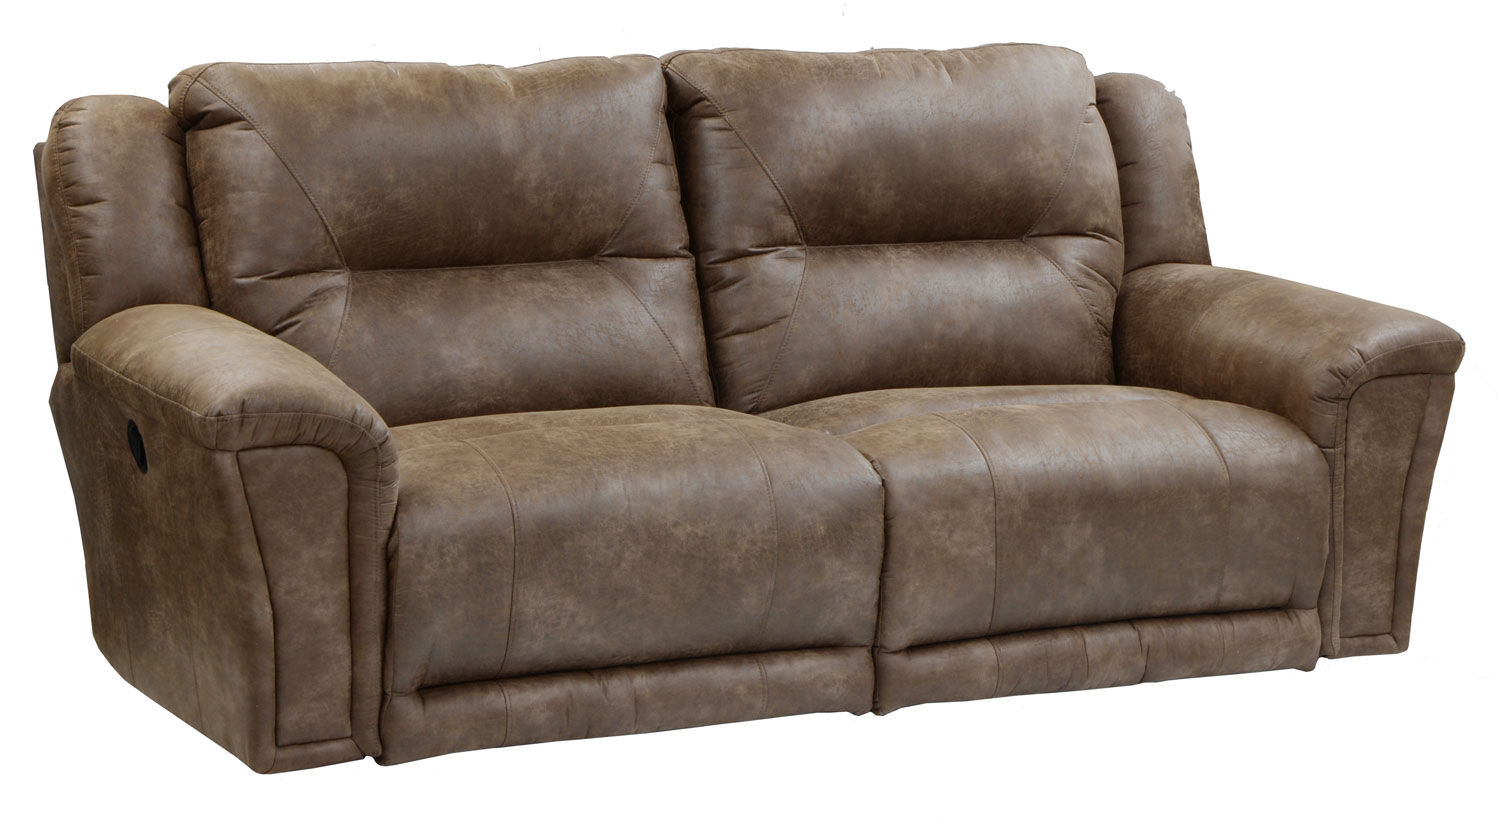 Catnapper Collin Lay Flat Reclining Sofa Set Silt 4321 Collin Sofa Set Silt